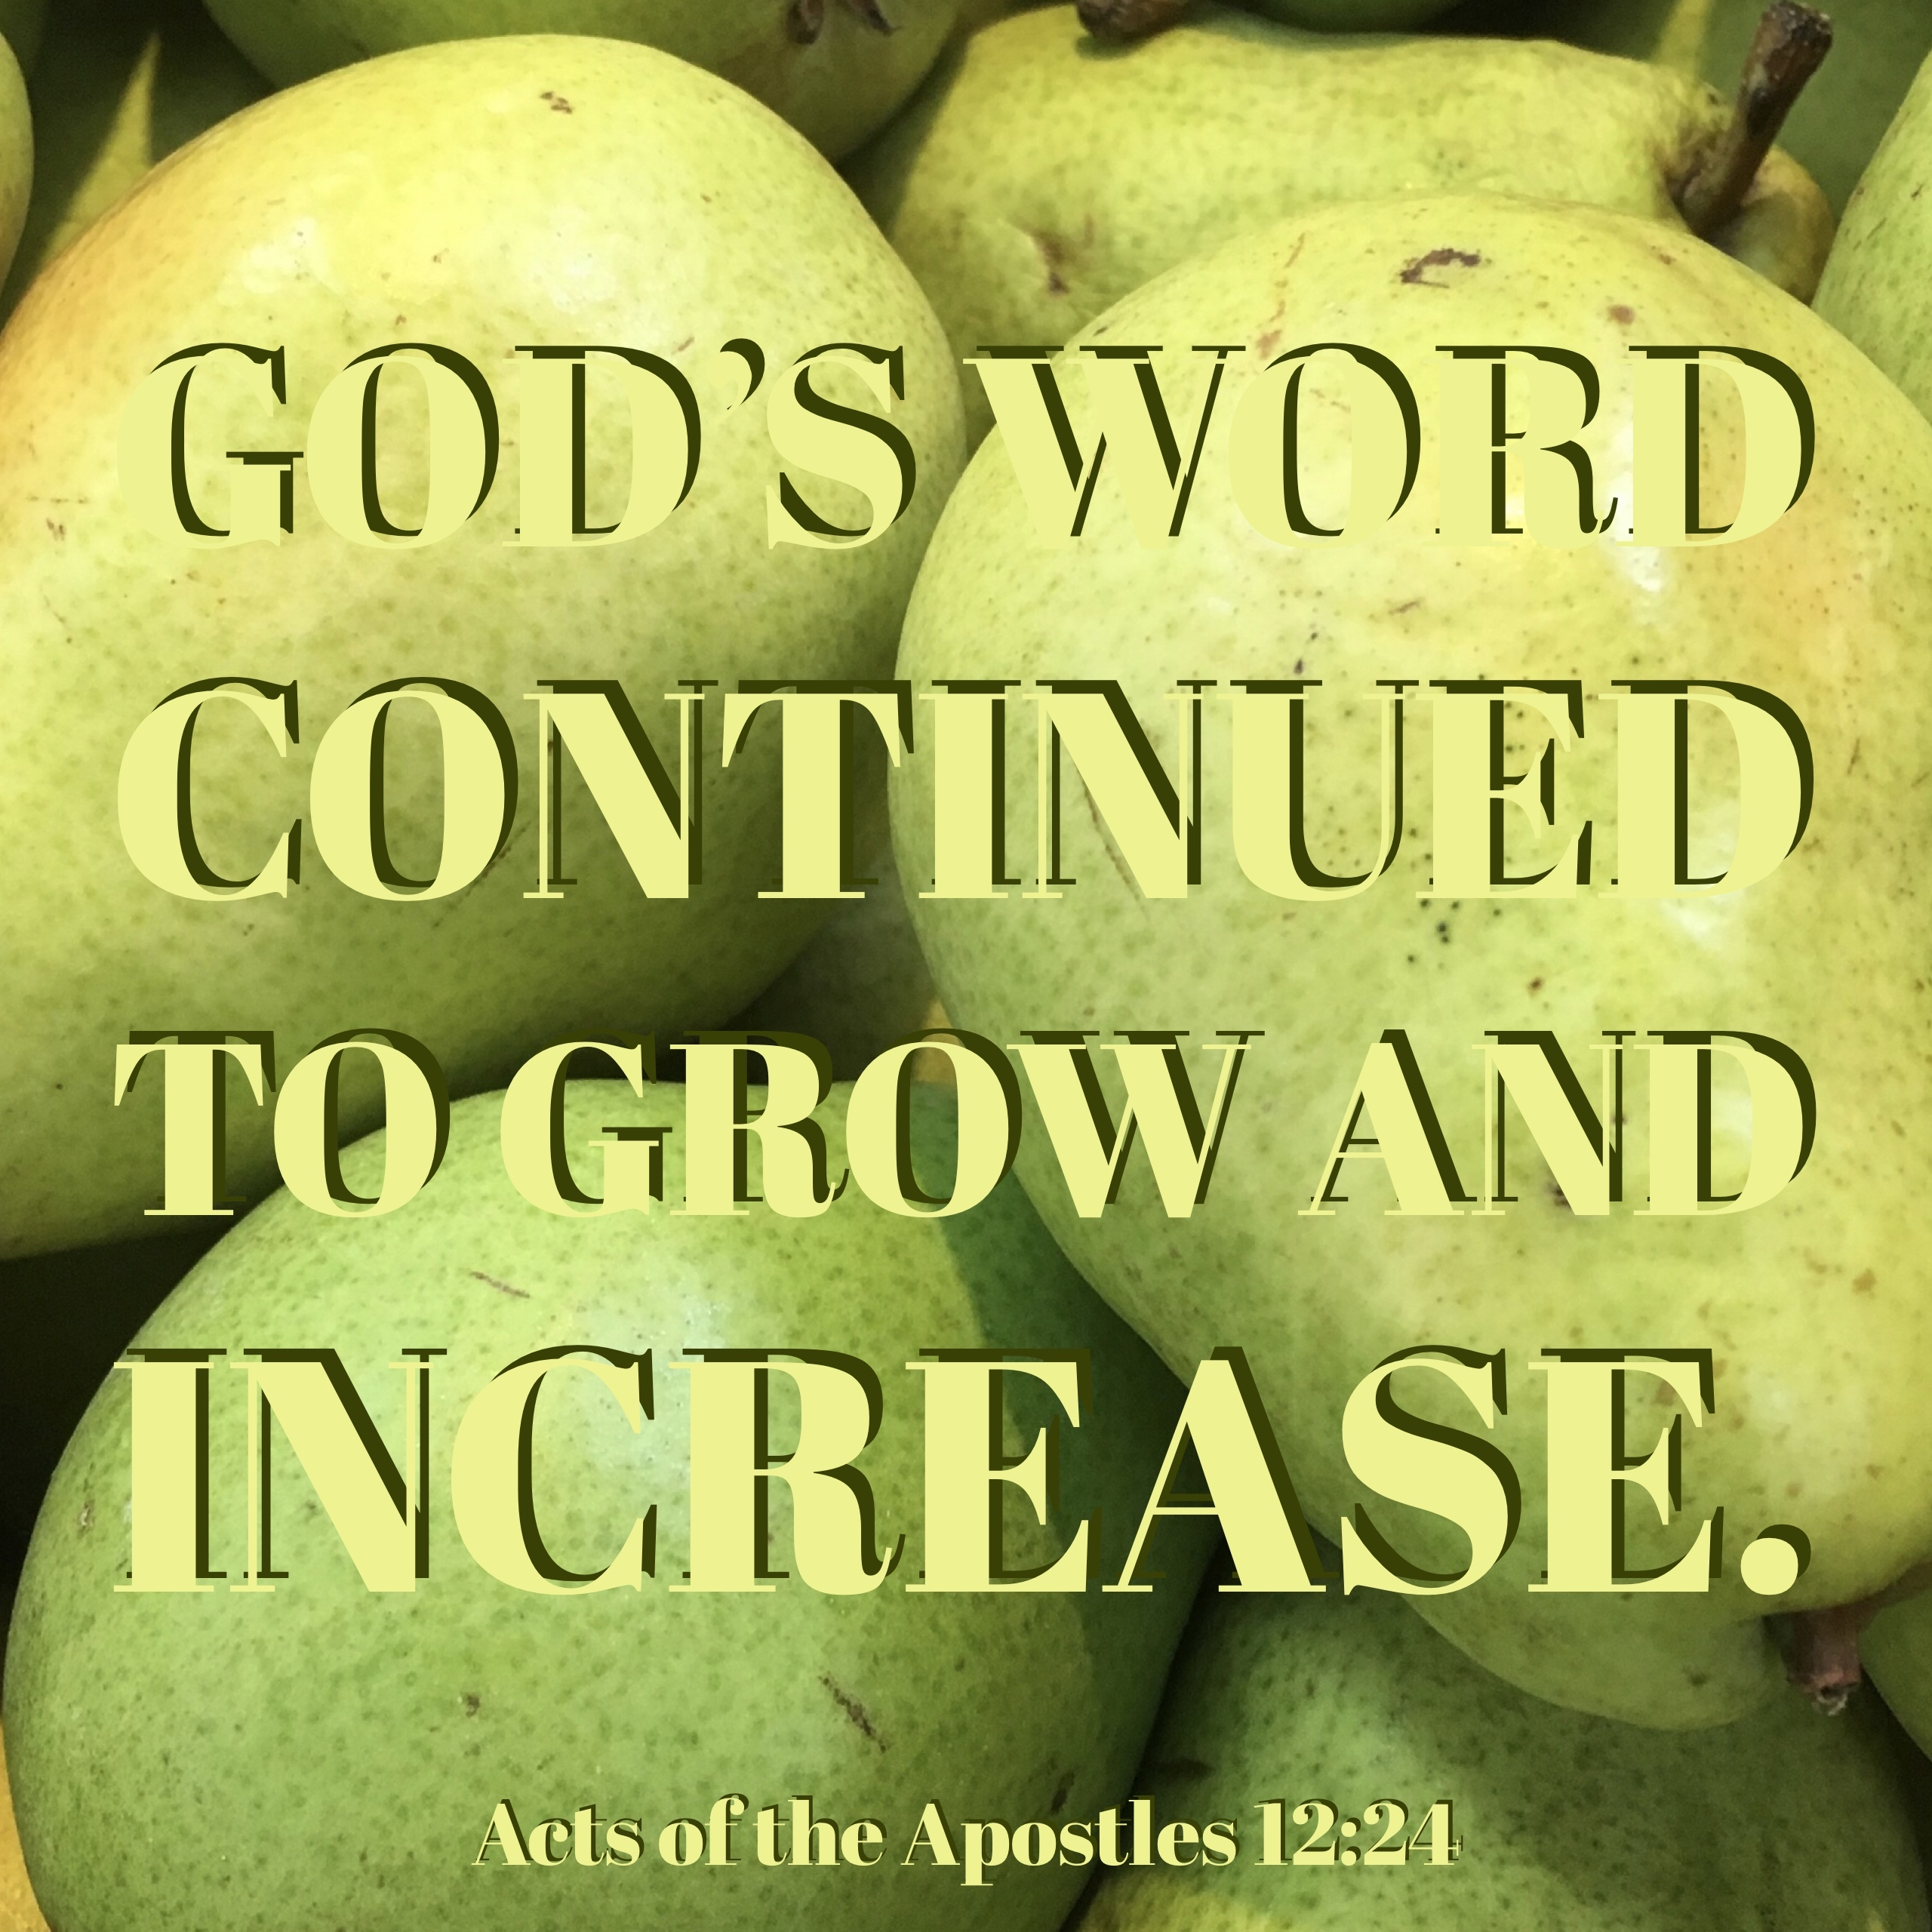 Acts of the Apostles 12:24 – Verse Images